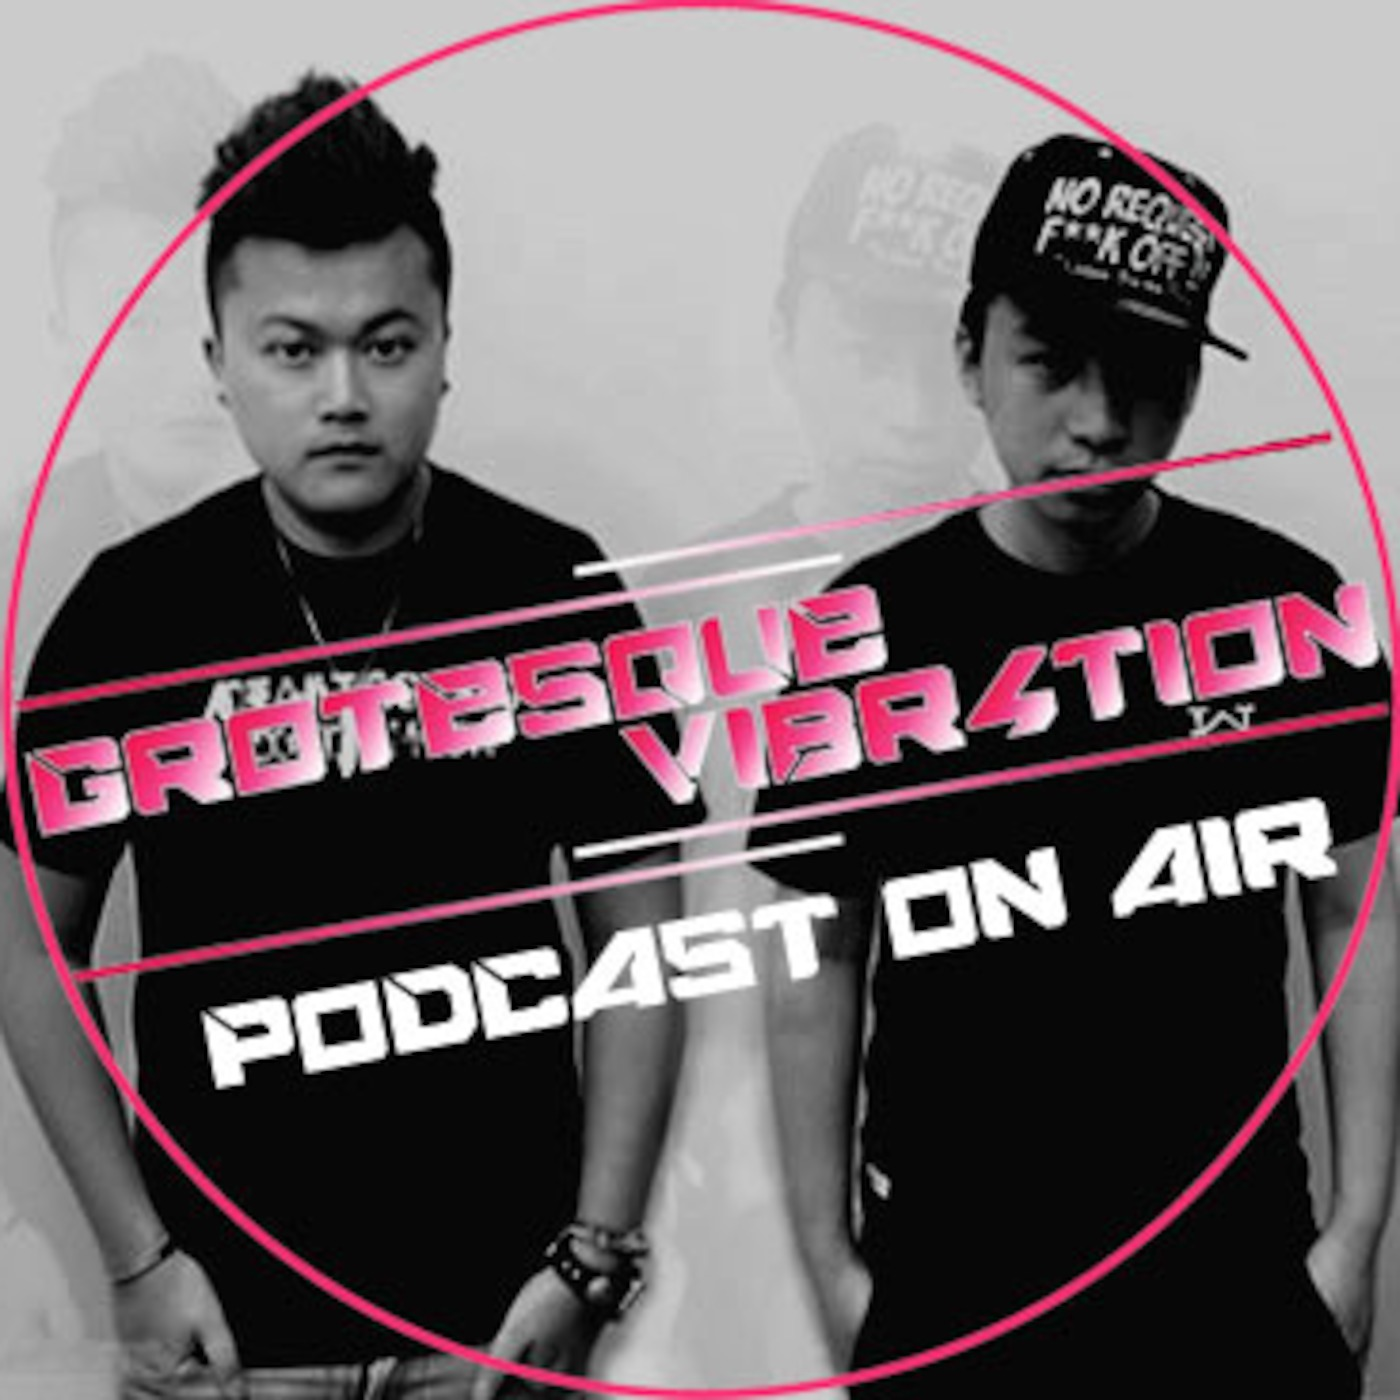 Grotesque Vibr4tion (H.K) Podcast